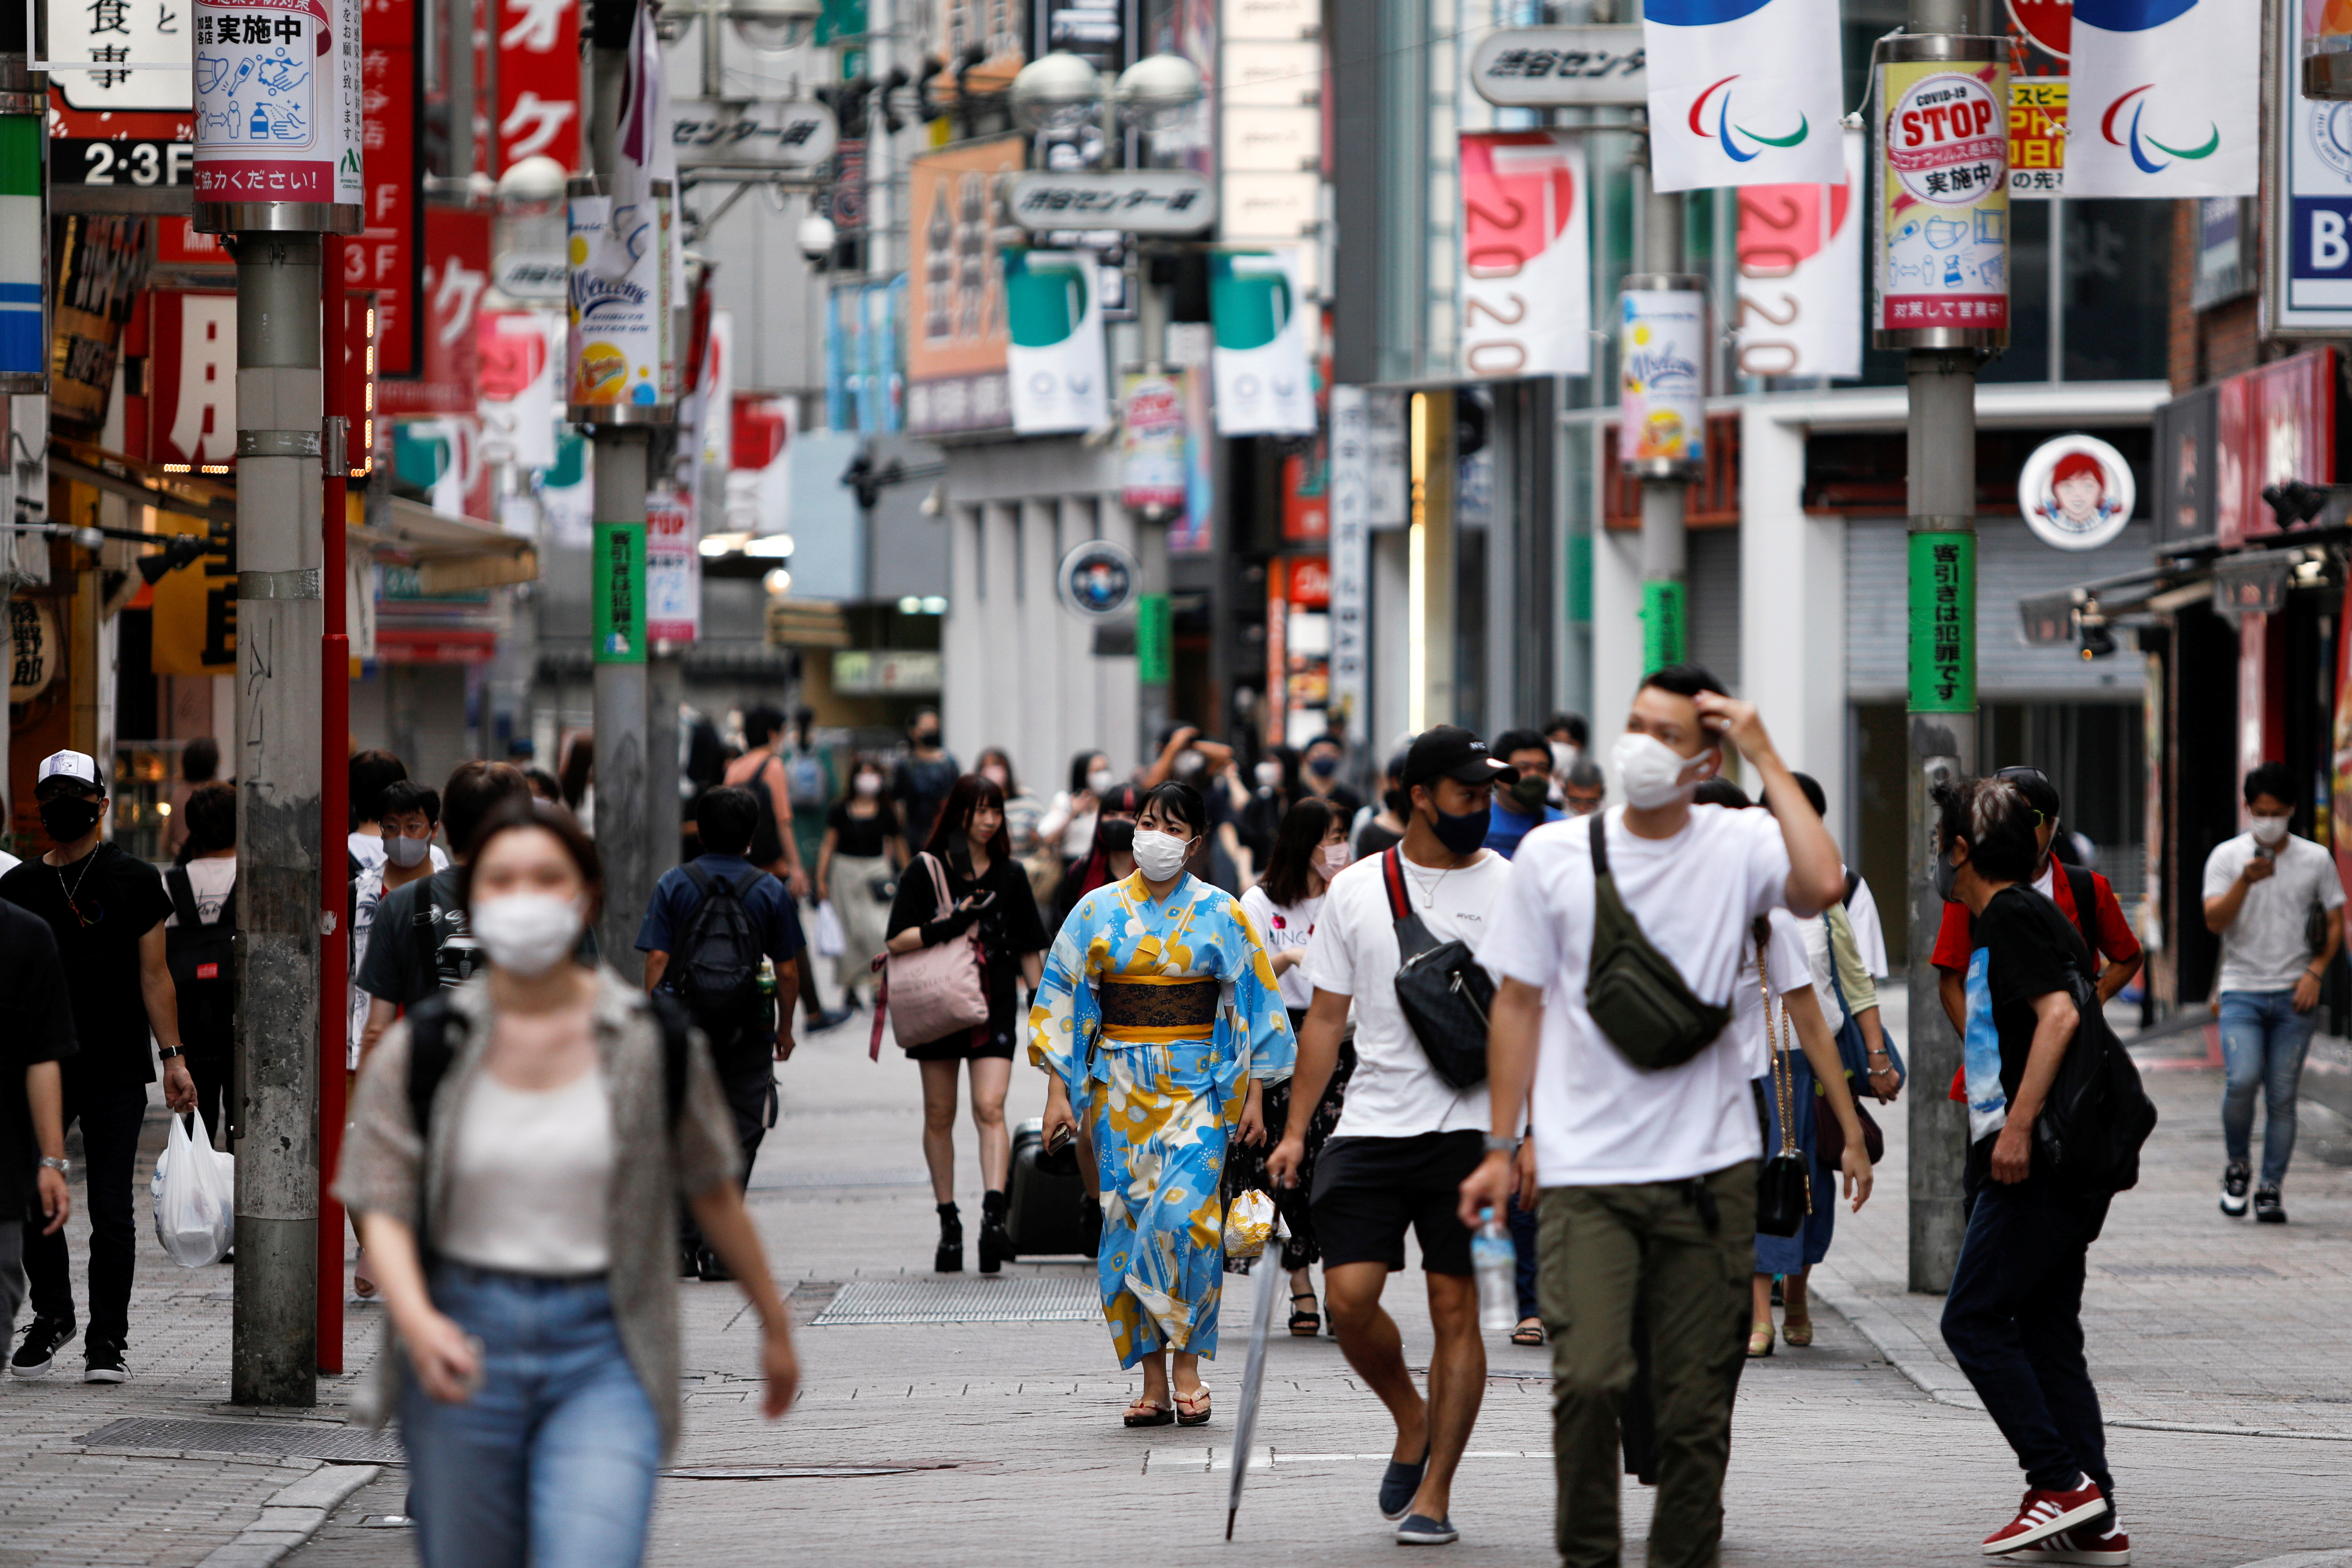 People walk in Shibuya shopping area, during a state of emergency amid the coronavirus disease (COVID-19) outbreak in Tokyo, Japan August 29, 2021. REUTERS/Androniki?Christodoulou